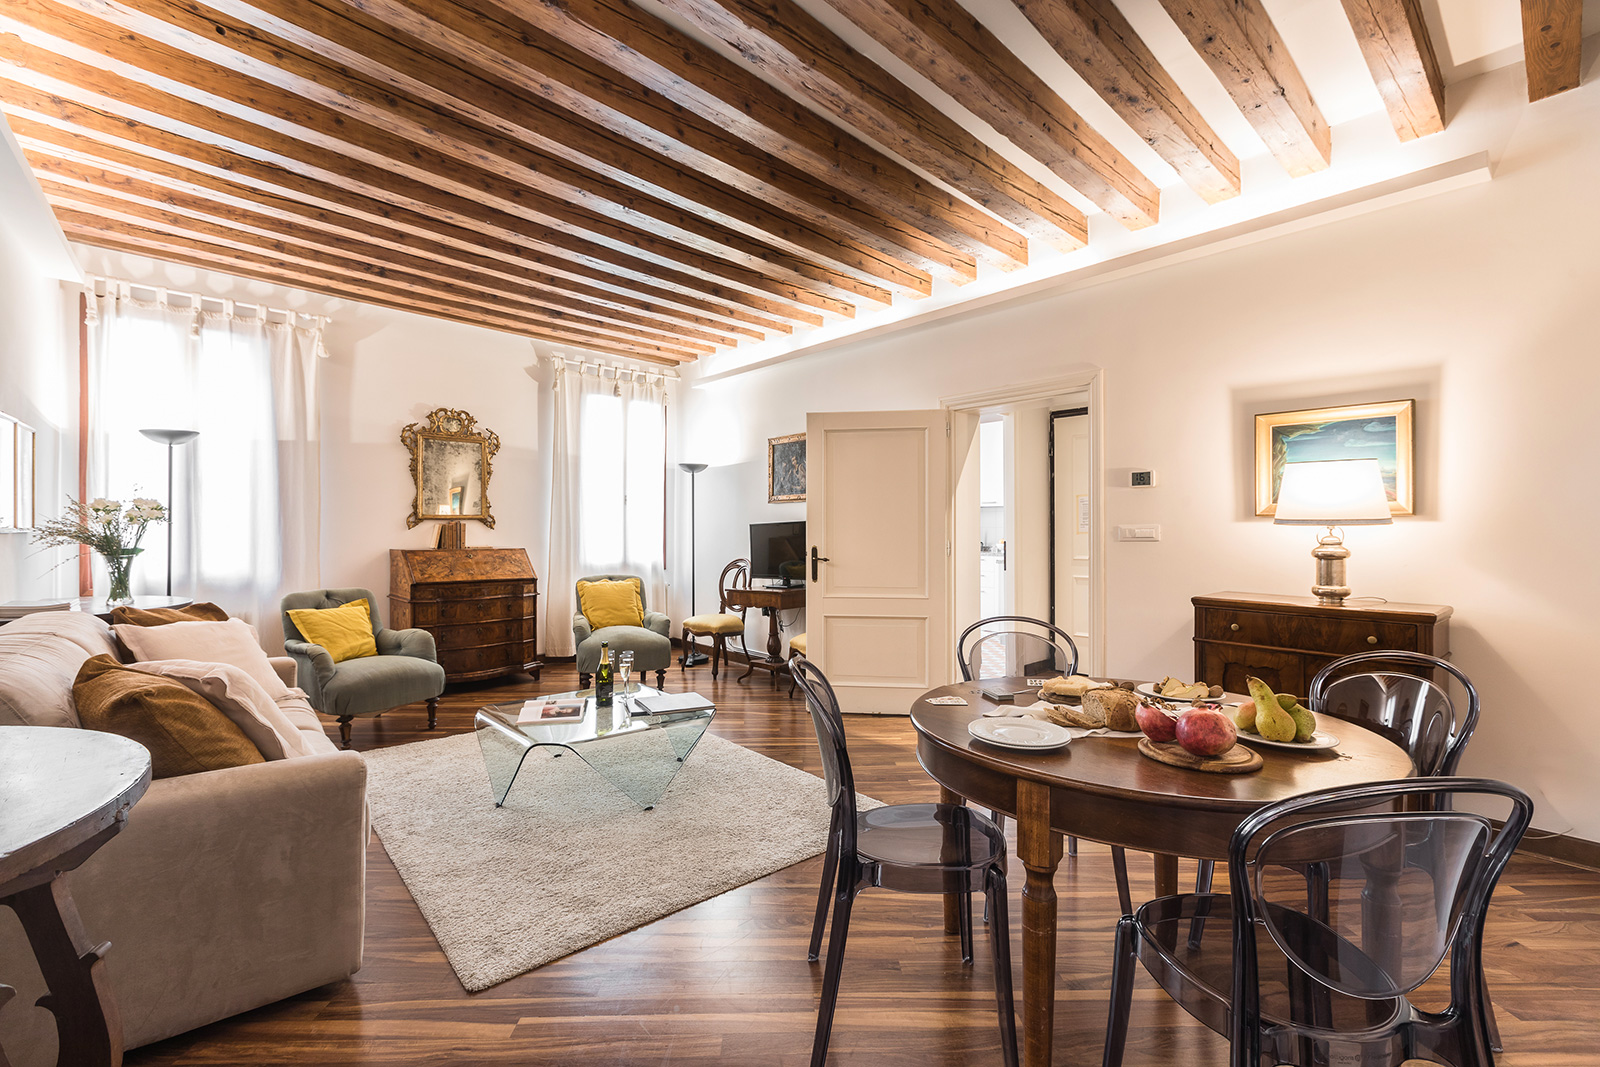 antique wooden beamed ceiling and parquet flooring